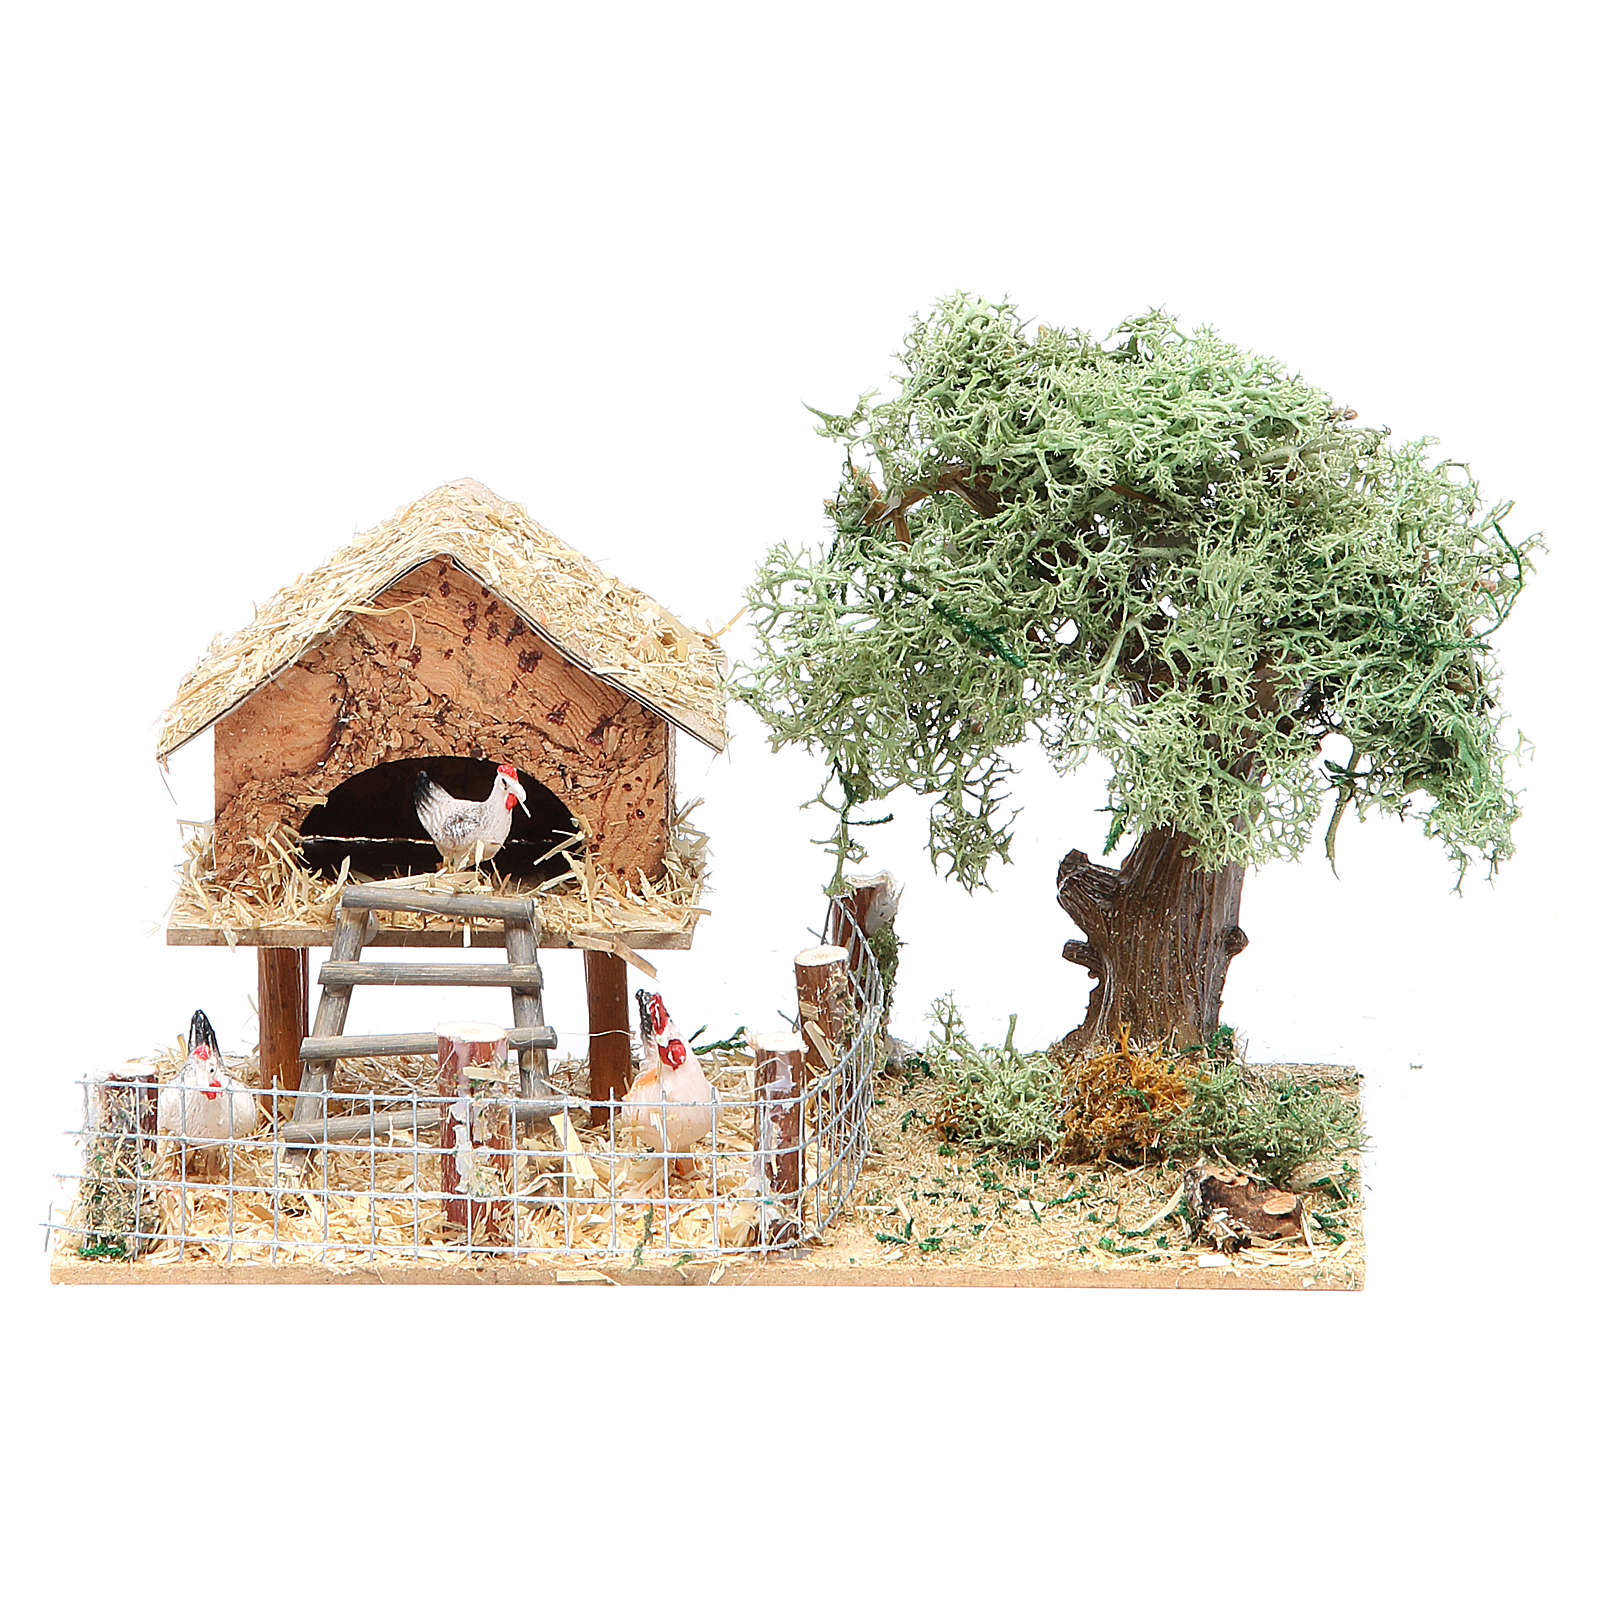 Hen house with hens 17x10x9cm 4